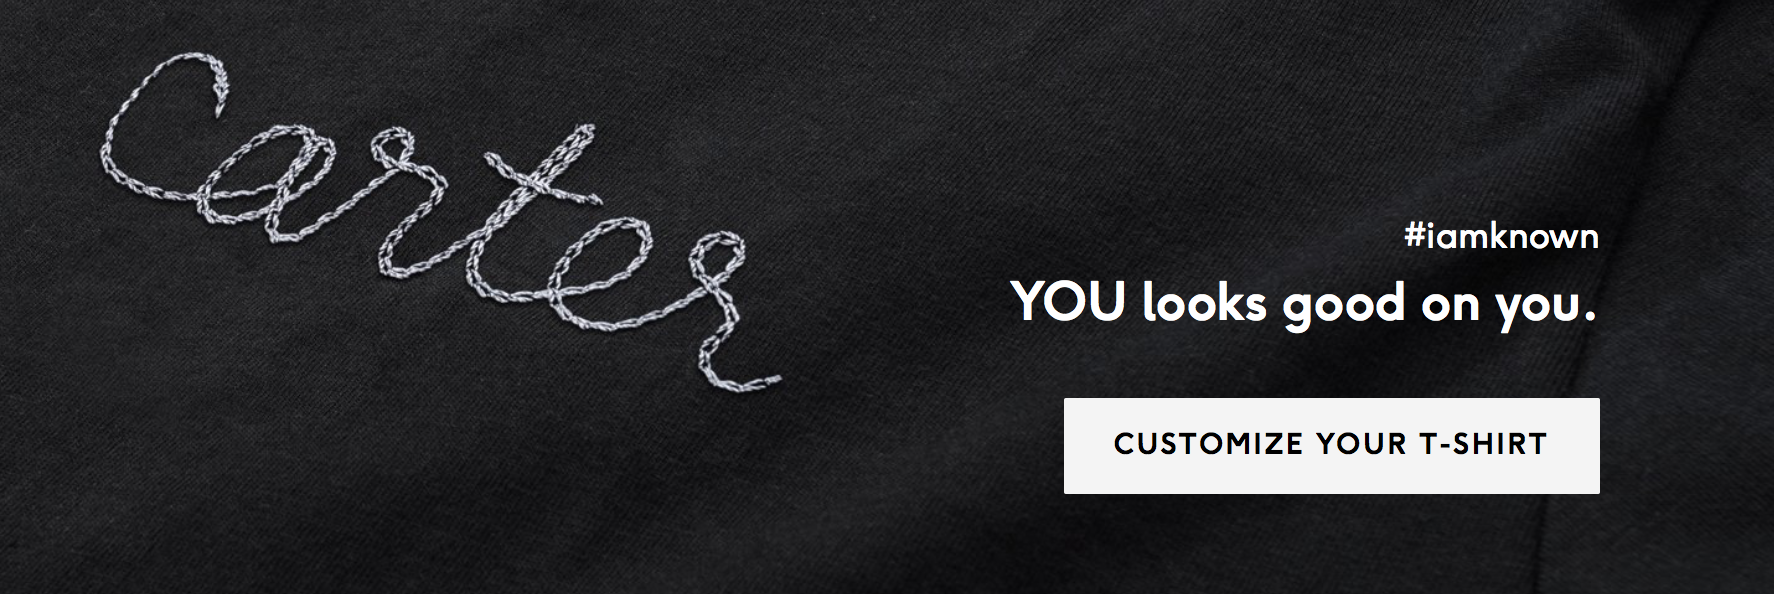 customize ethical tee shirts